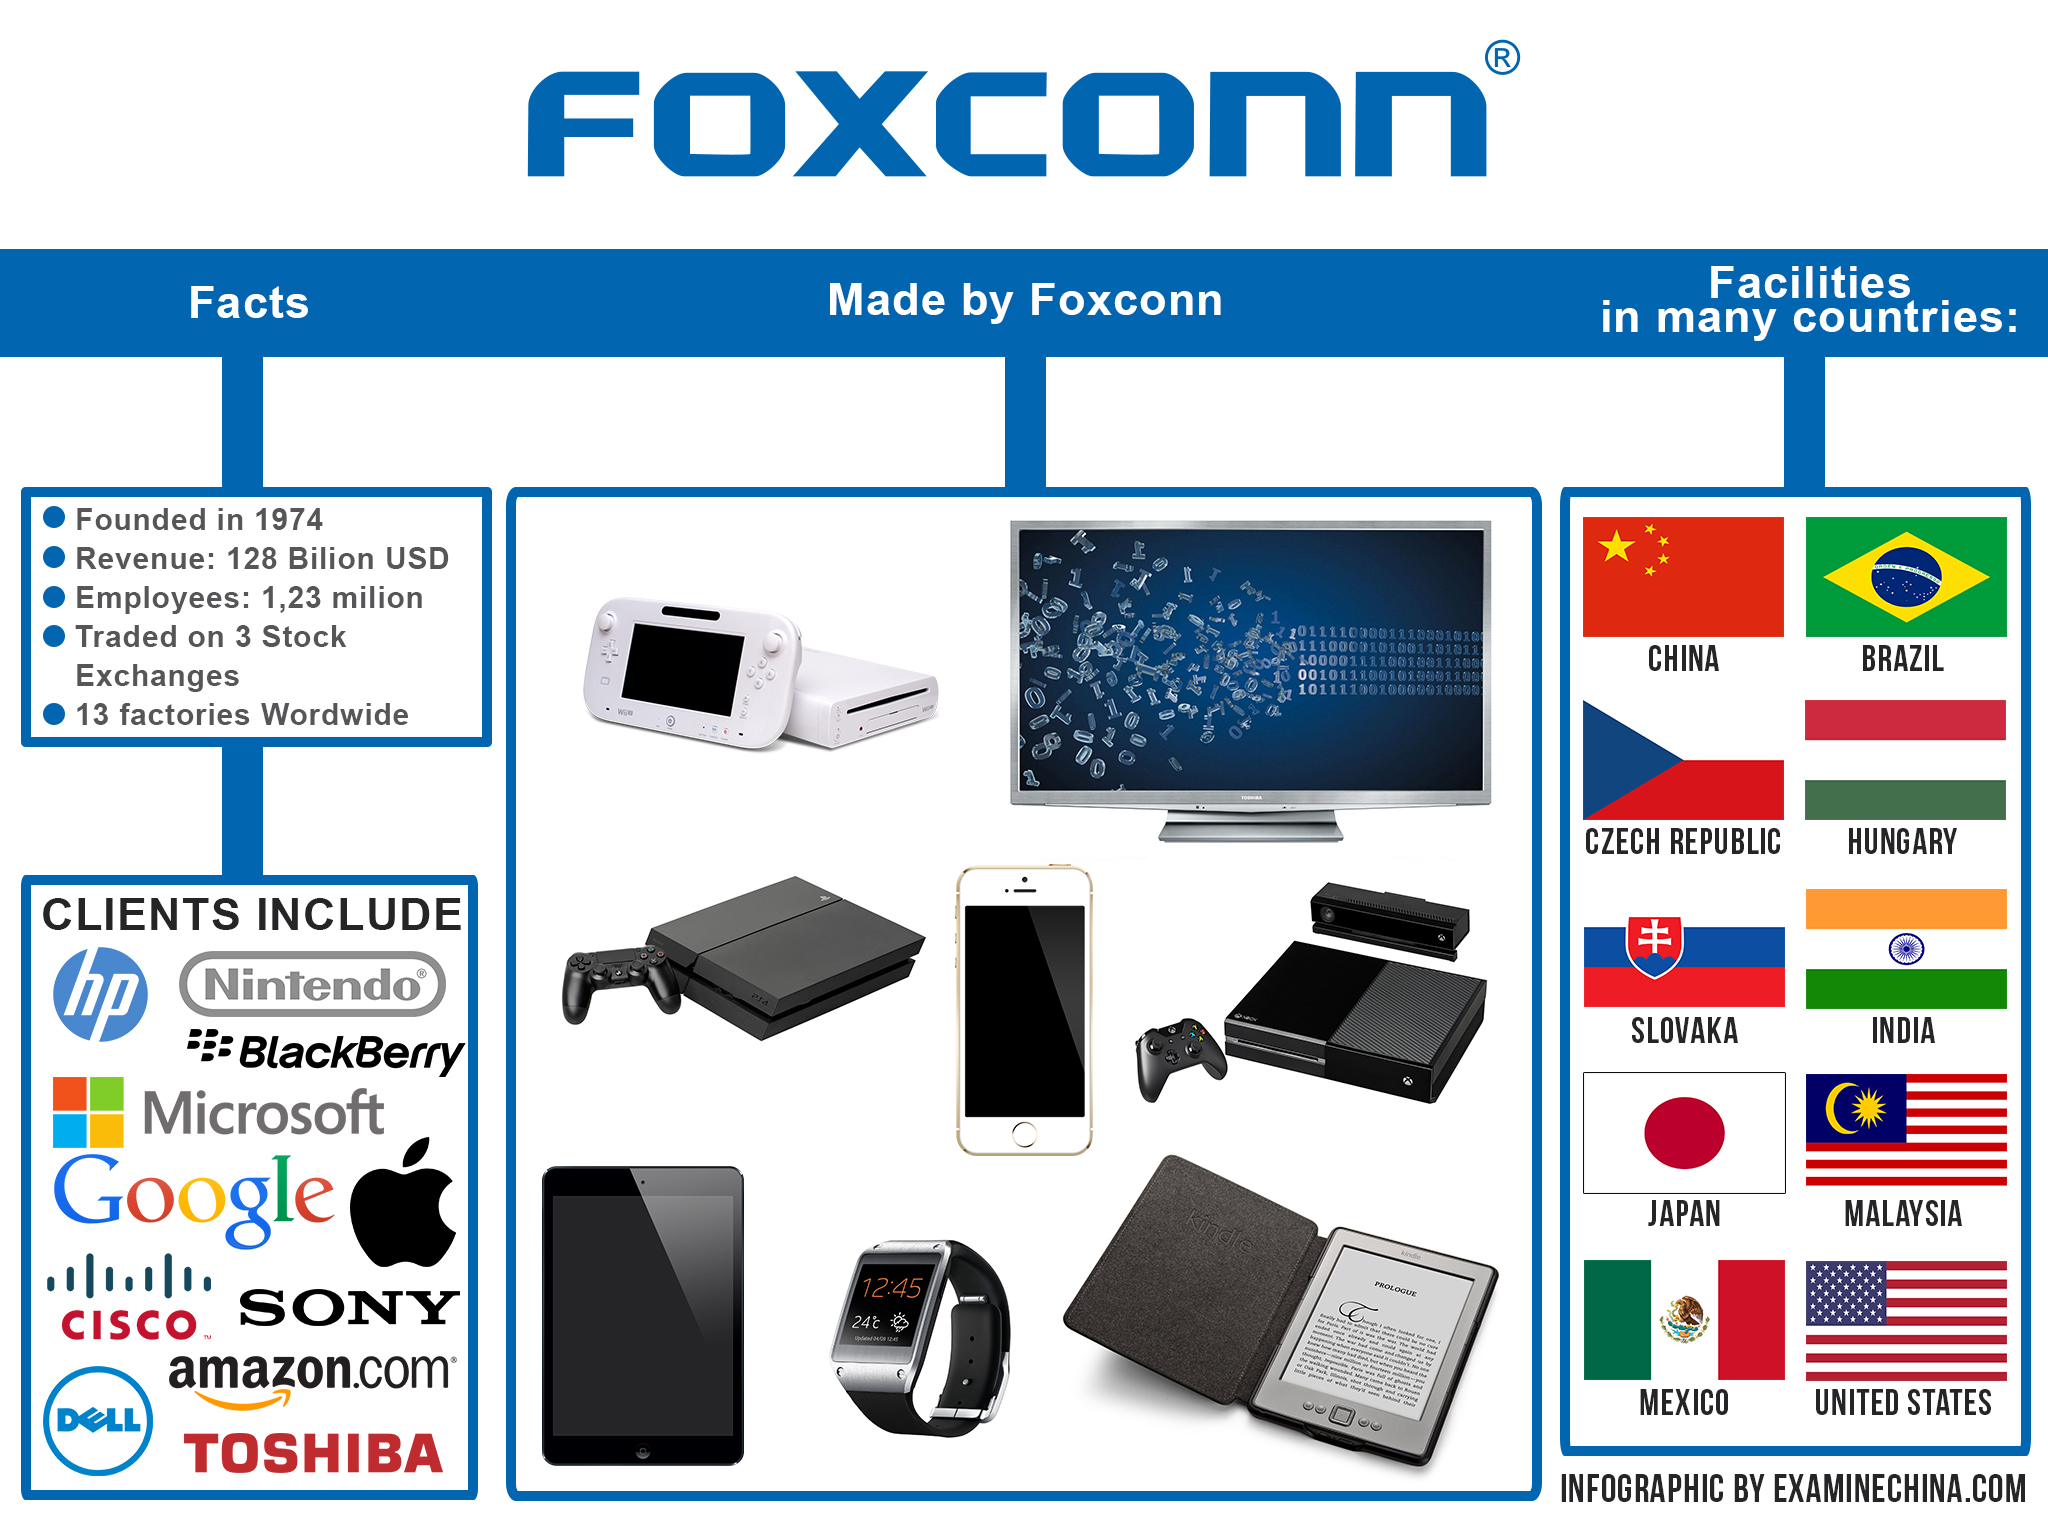 Facts about Foxconn